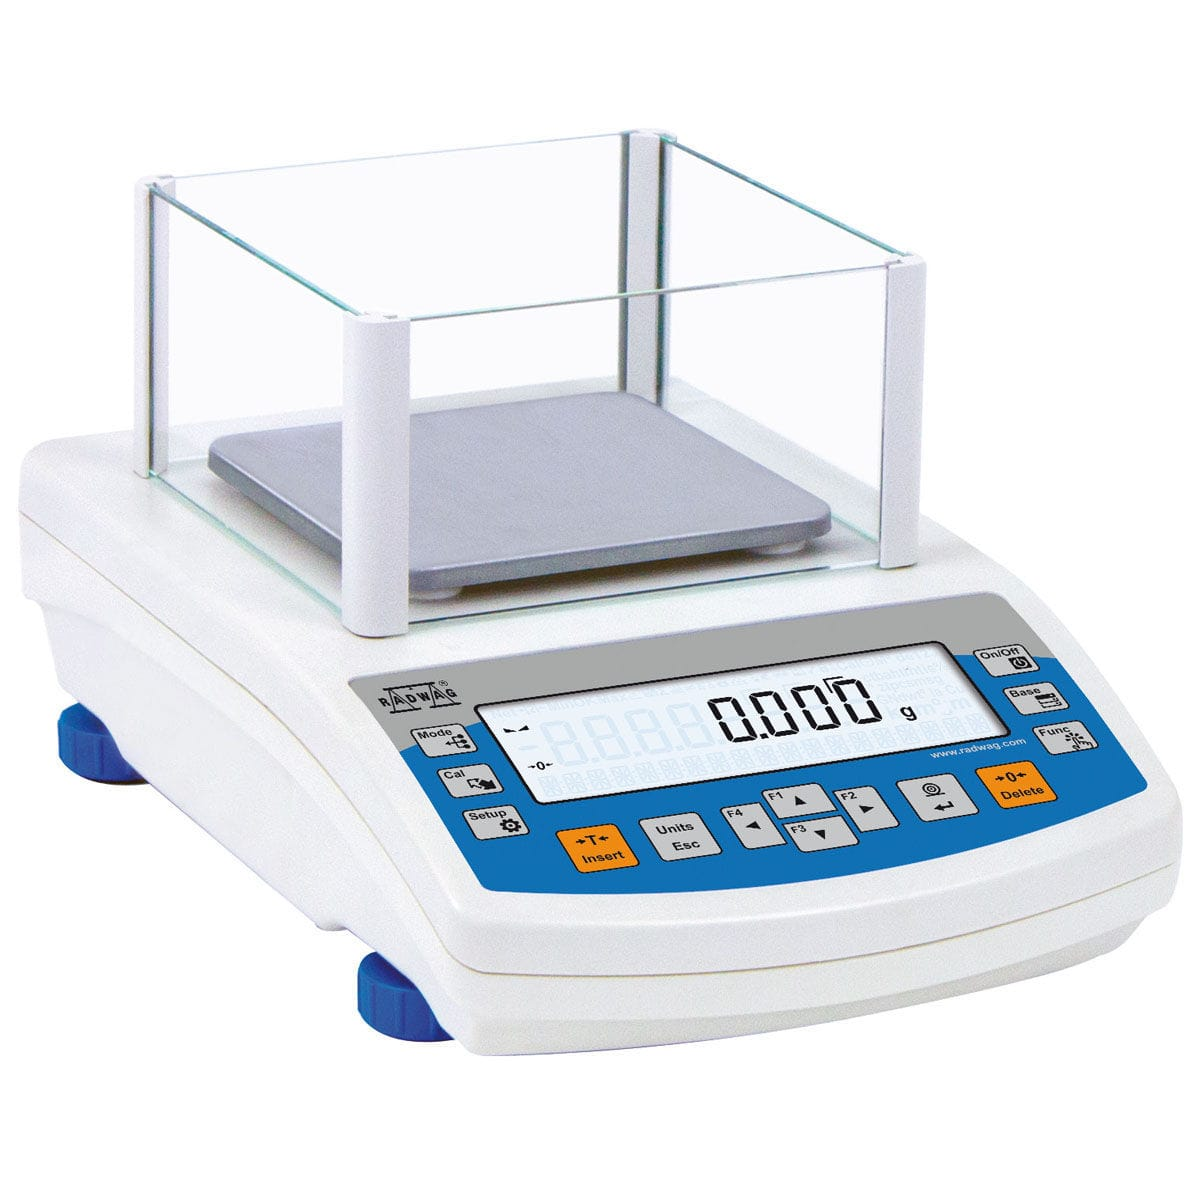 Electronic weighing scale / with digital display / bench-top - PS R1